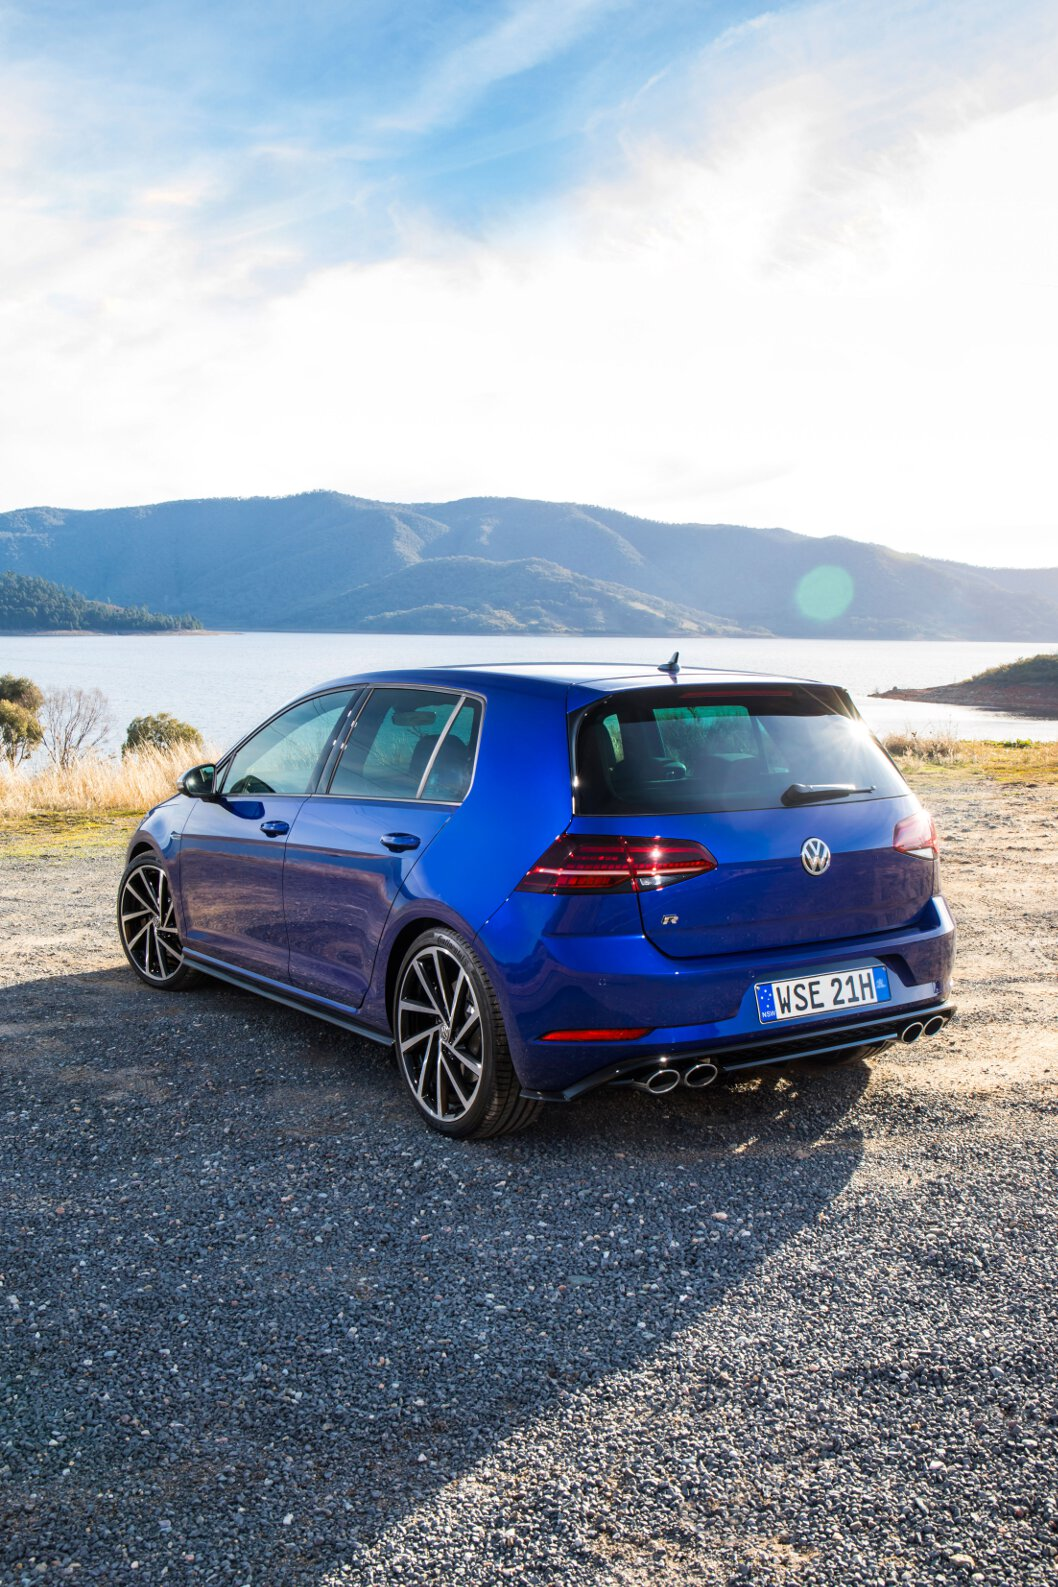 Volkswagen Golf 2019 >> 2017 Volkswagen Golf 7.5 Performance range pricing and specification - ForceGT.com